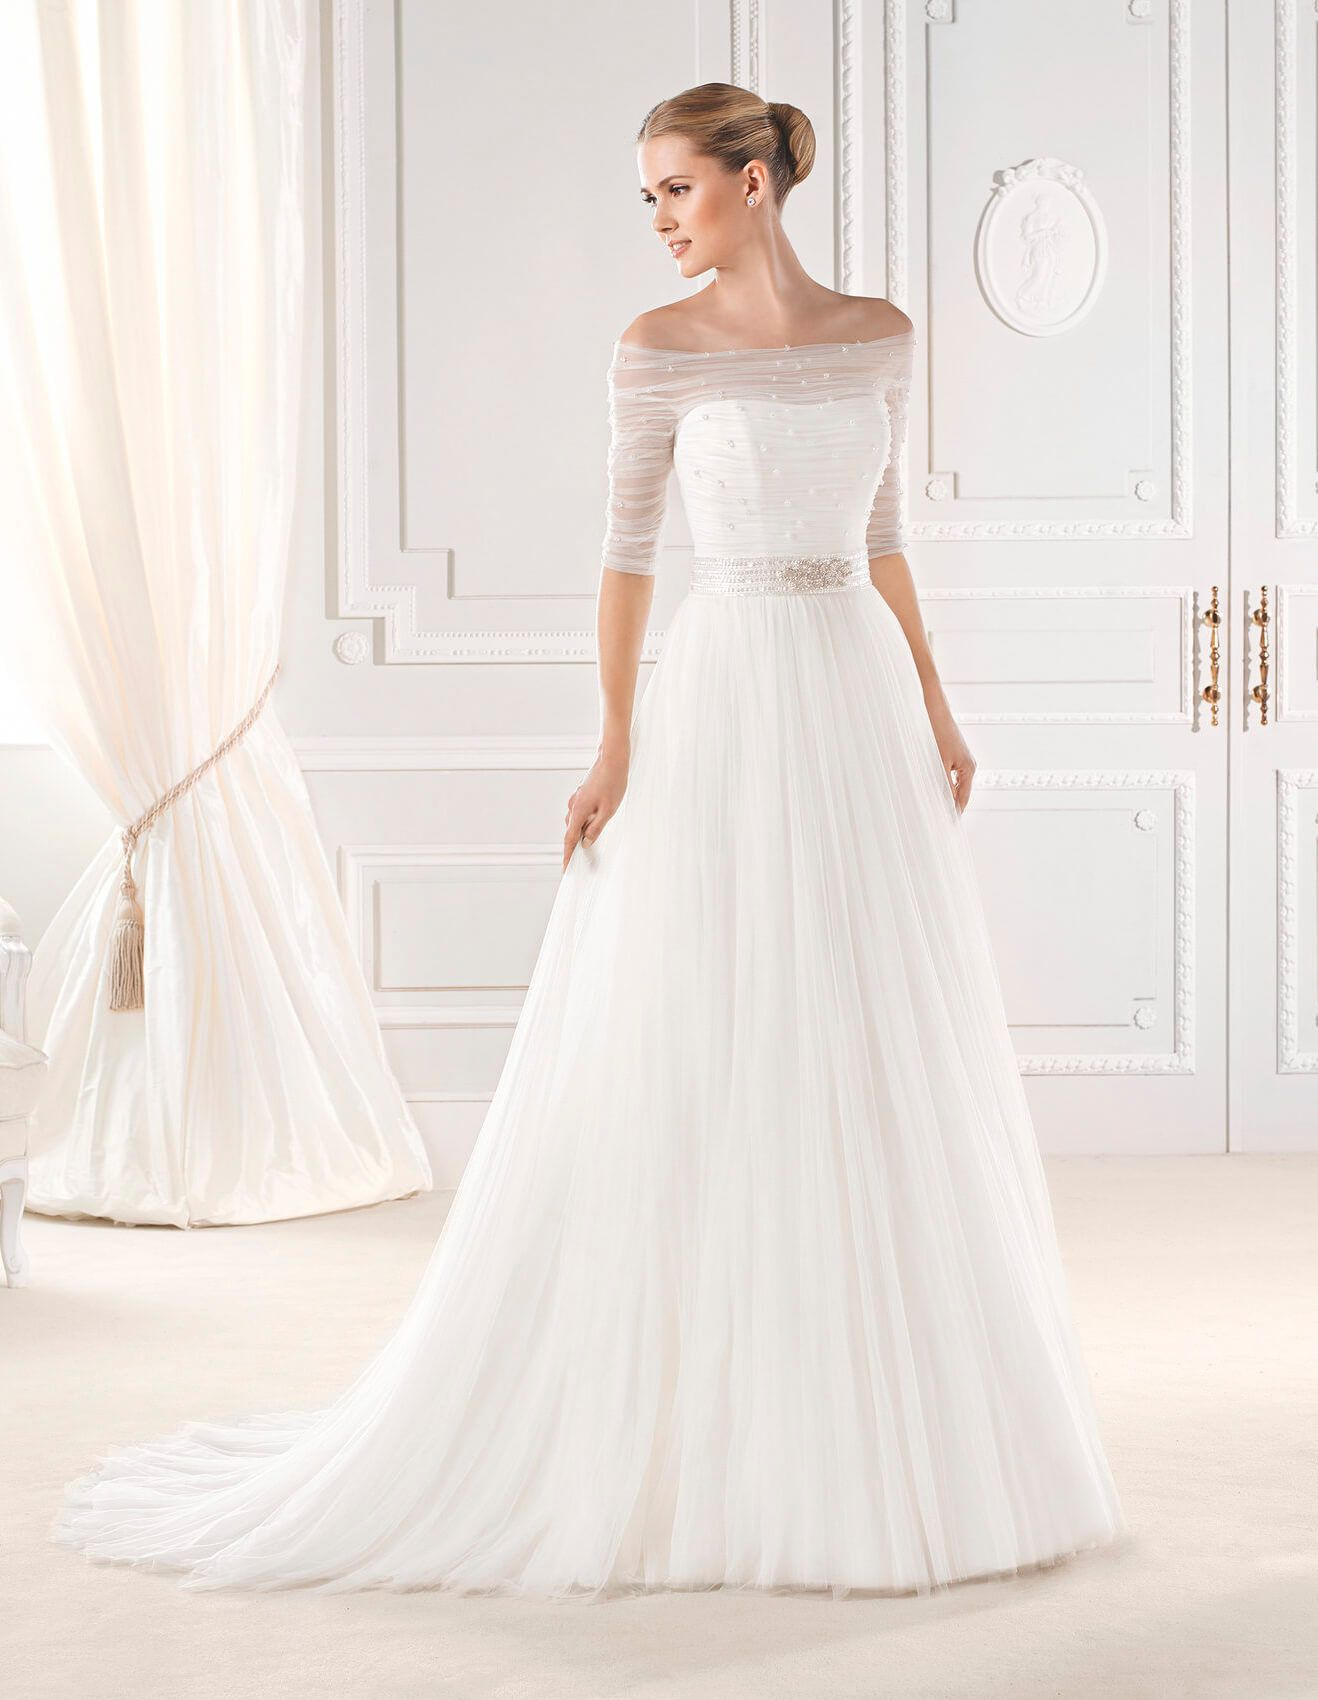 Amazing La Sposa Esien Available at Stella us Bridal u Evening Collections